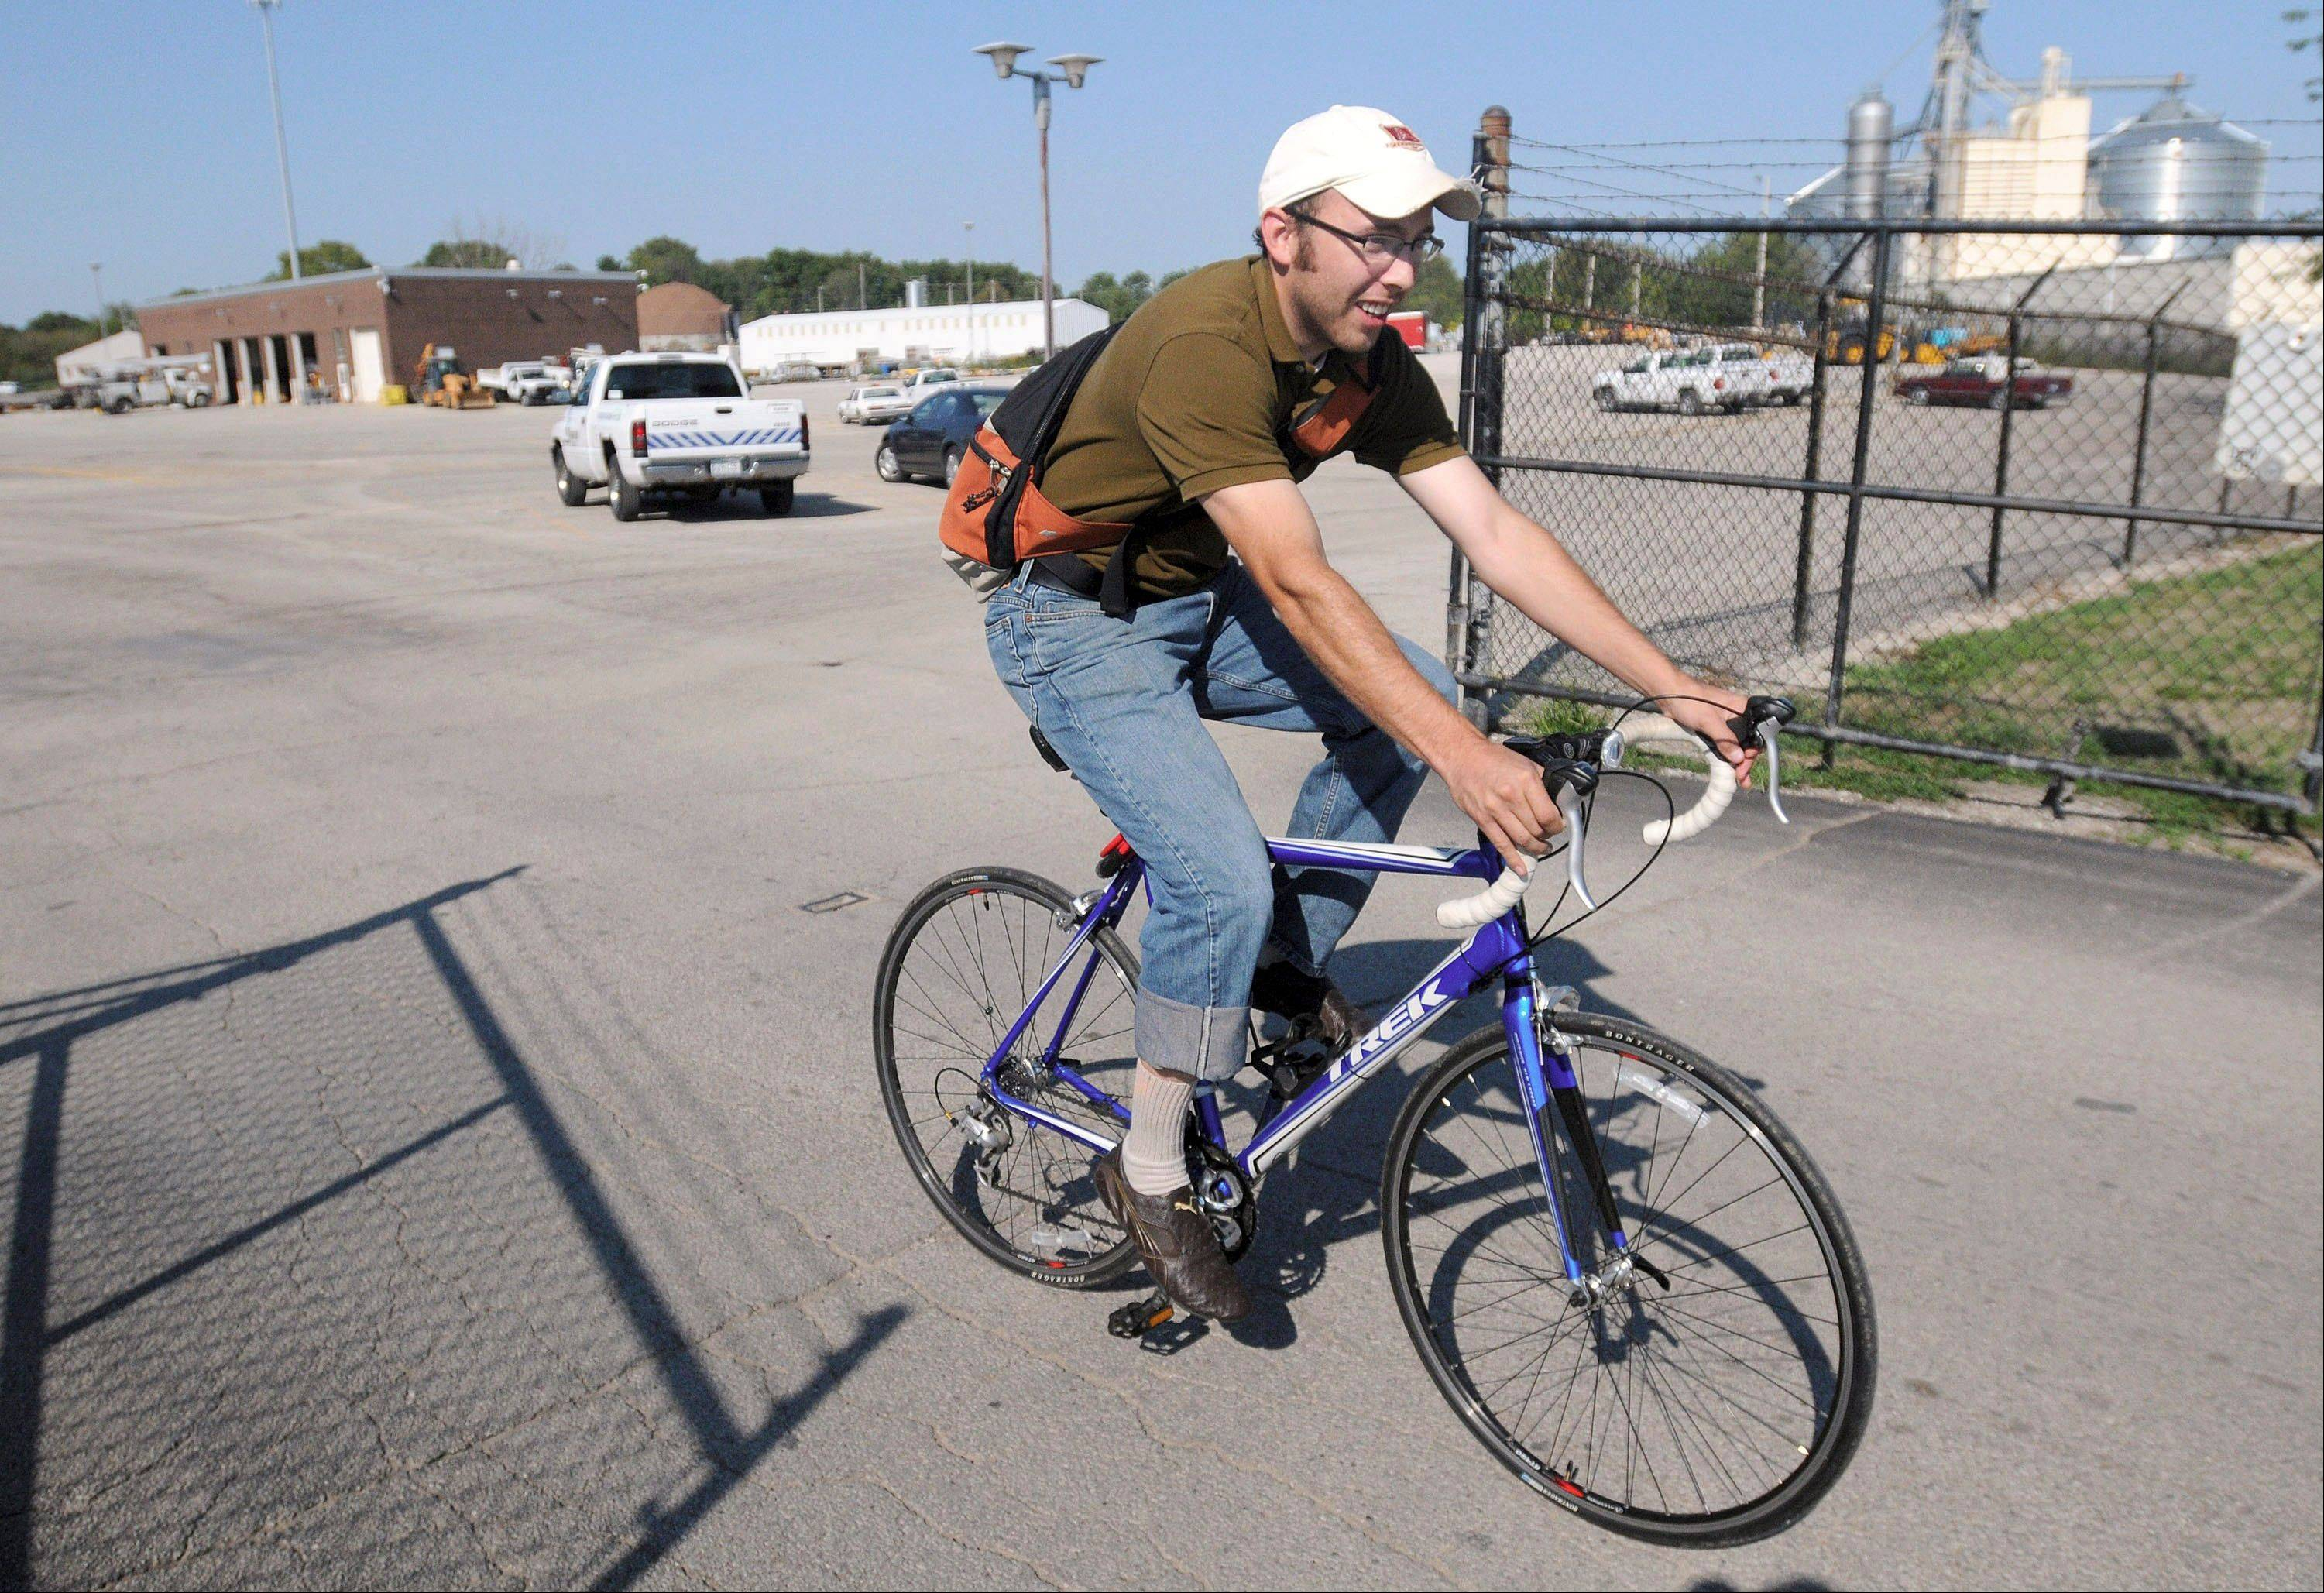 Mitch Lankford, an engineer with the city of Danville, rides his bike. The city is doing an inventory of sidewalks and bicycle facilities for the city's MOVE Danville initiative, which is an effort by the city to make Danville more bicycle and pedestrian friendly.